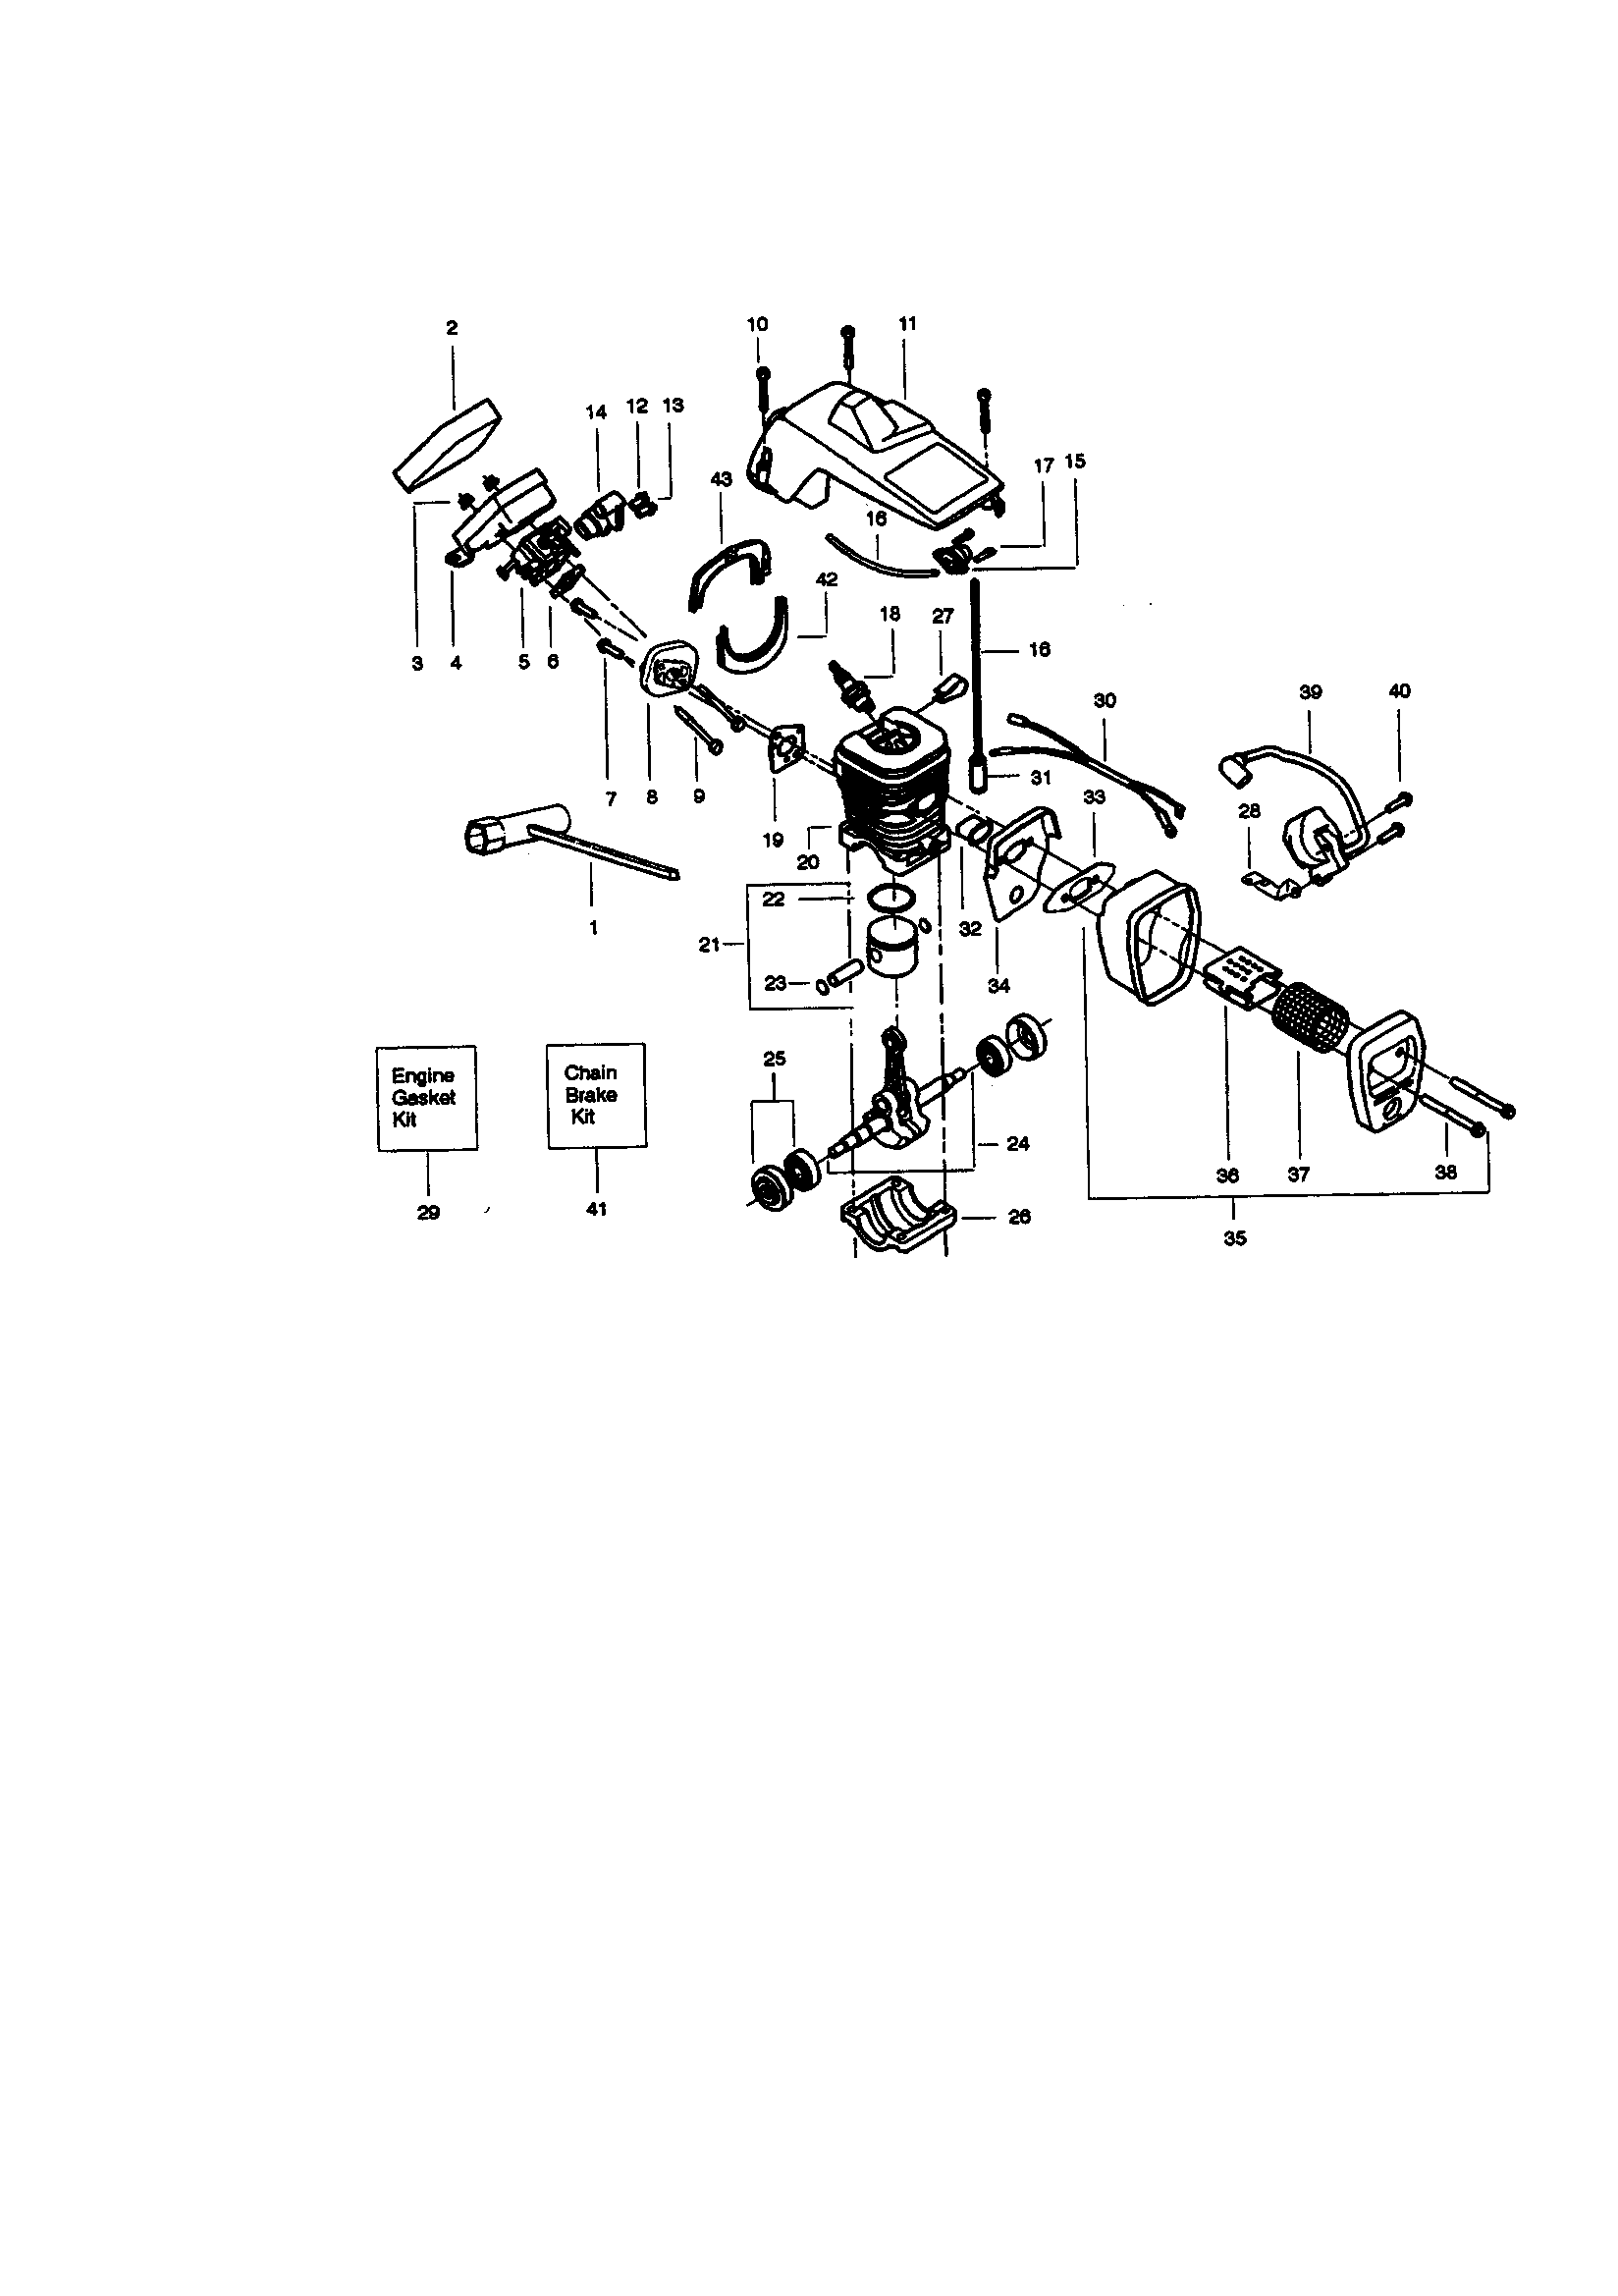 ENGINE Diagram & Parts List for Model 358350160 Craftsman